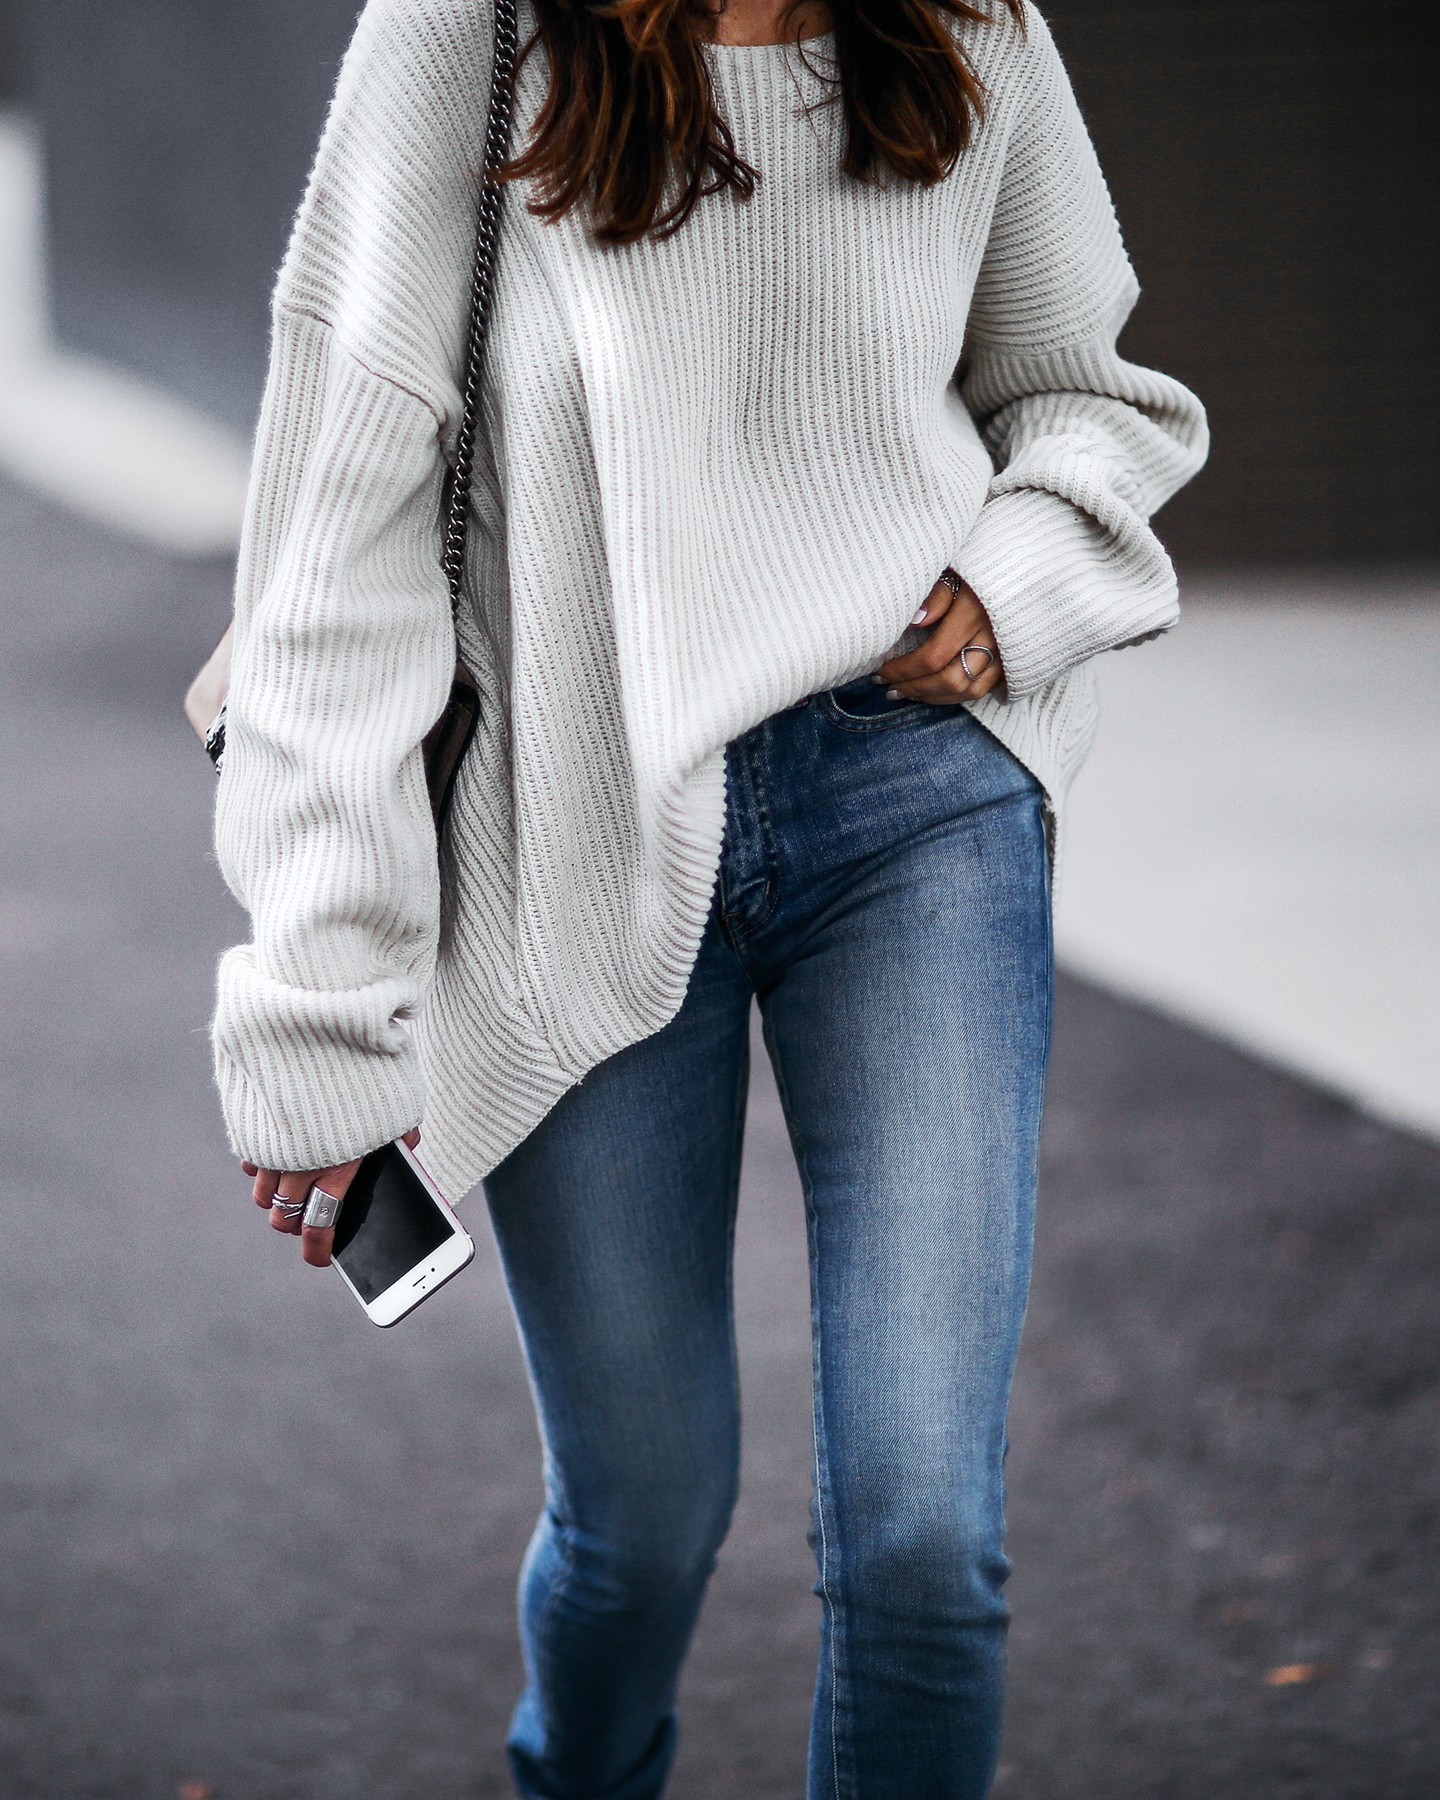 slouchy oversized sweater and skinny jeans